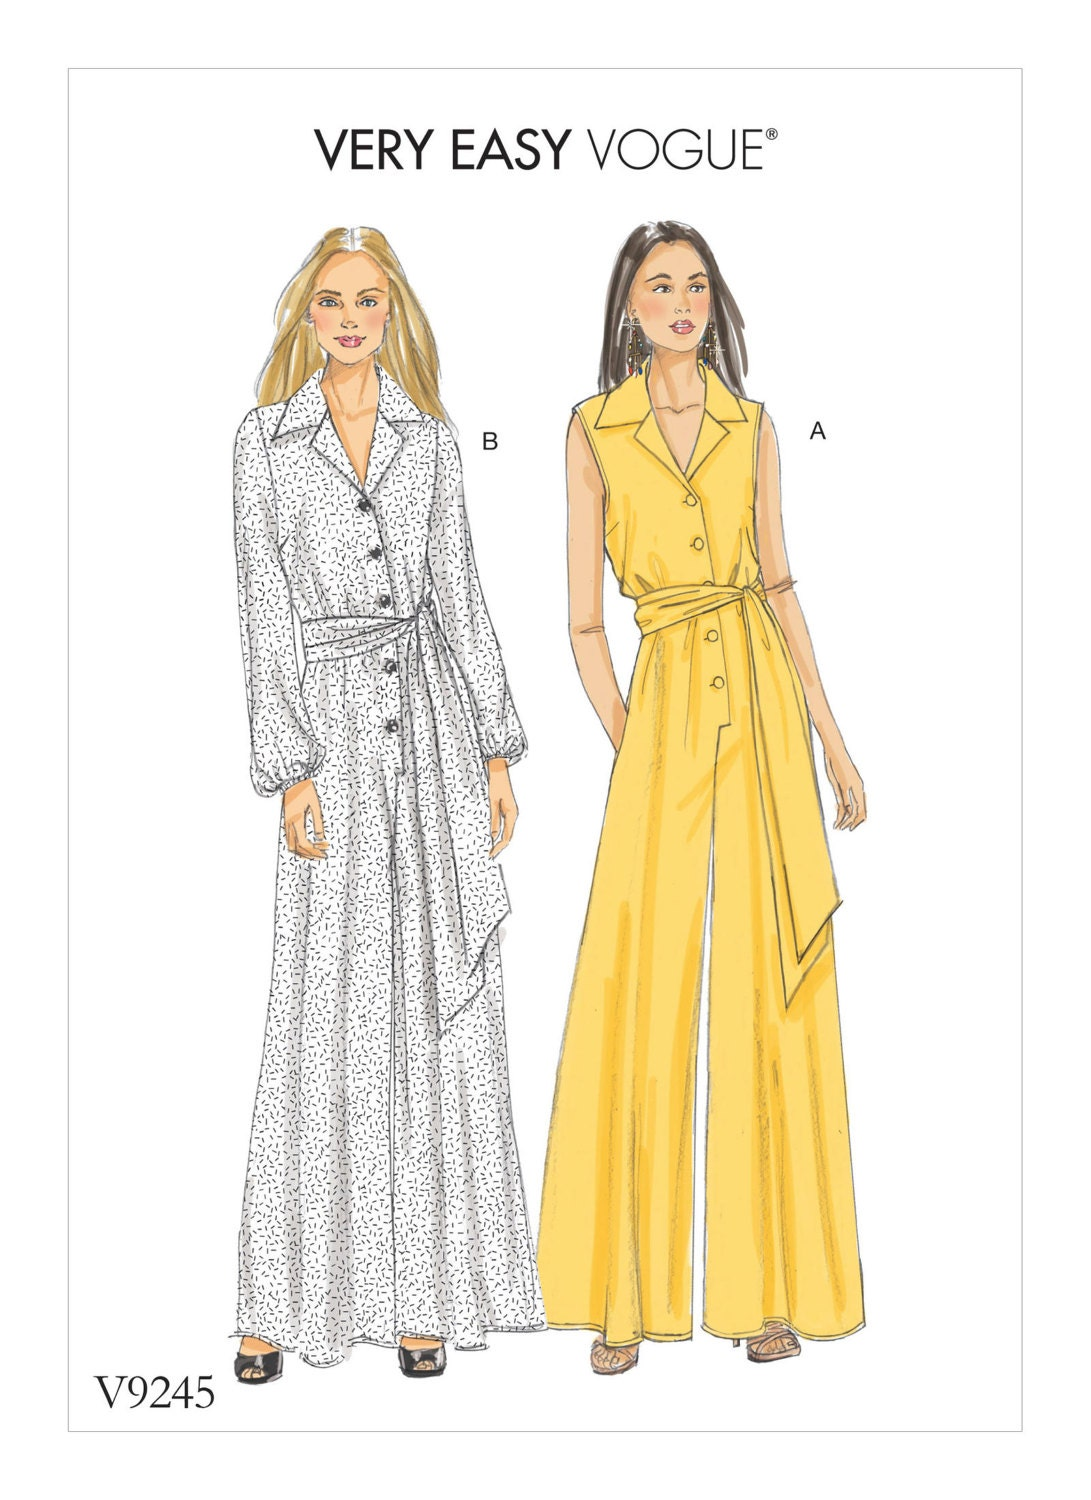 a21fe397fdec Vogue Pattern V9245 Misses  Petite Button-Up Jumpsuits and Sash from  GGselections on Etsy Studio